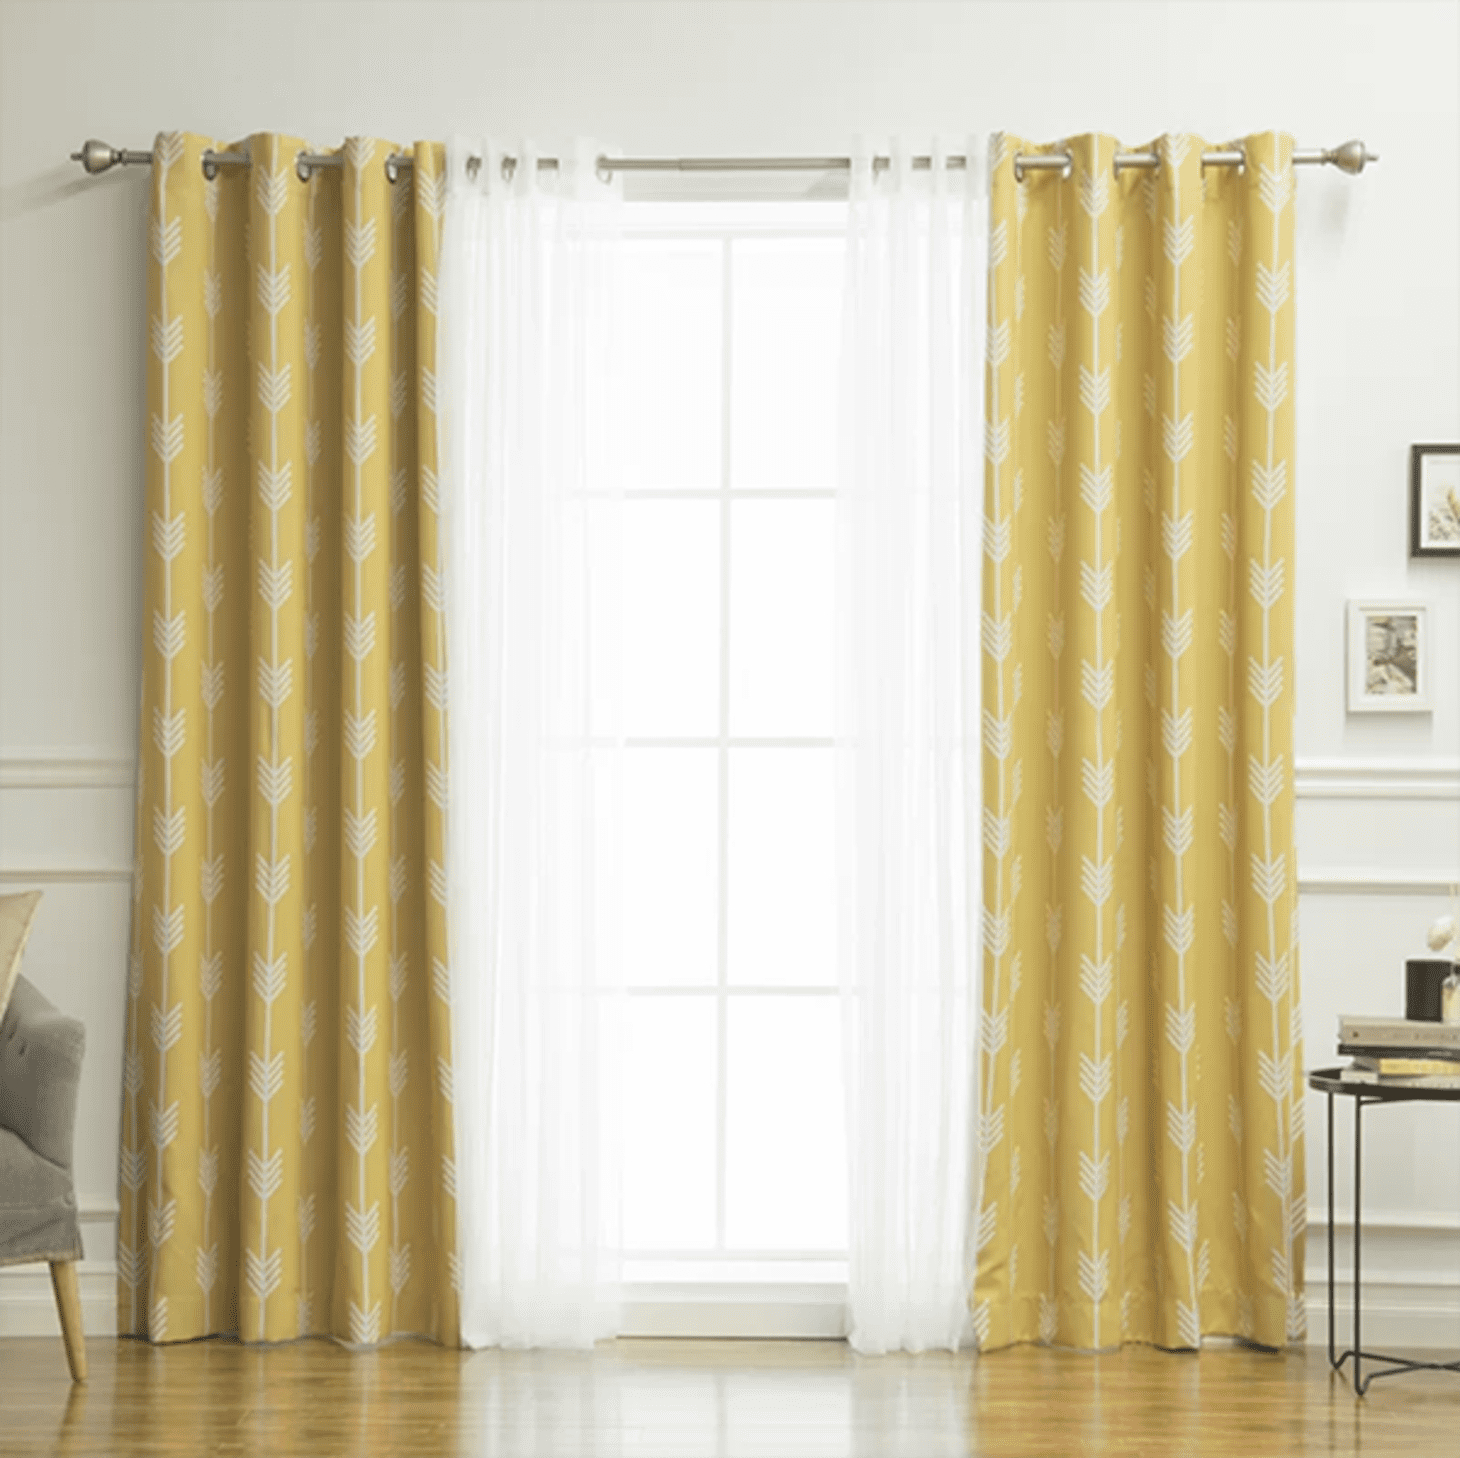 Best Insulated Blackout Curtains (View 16 of 20)